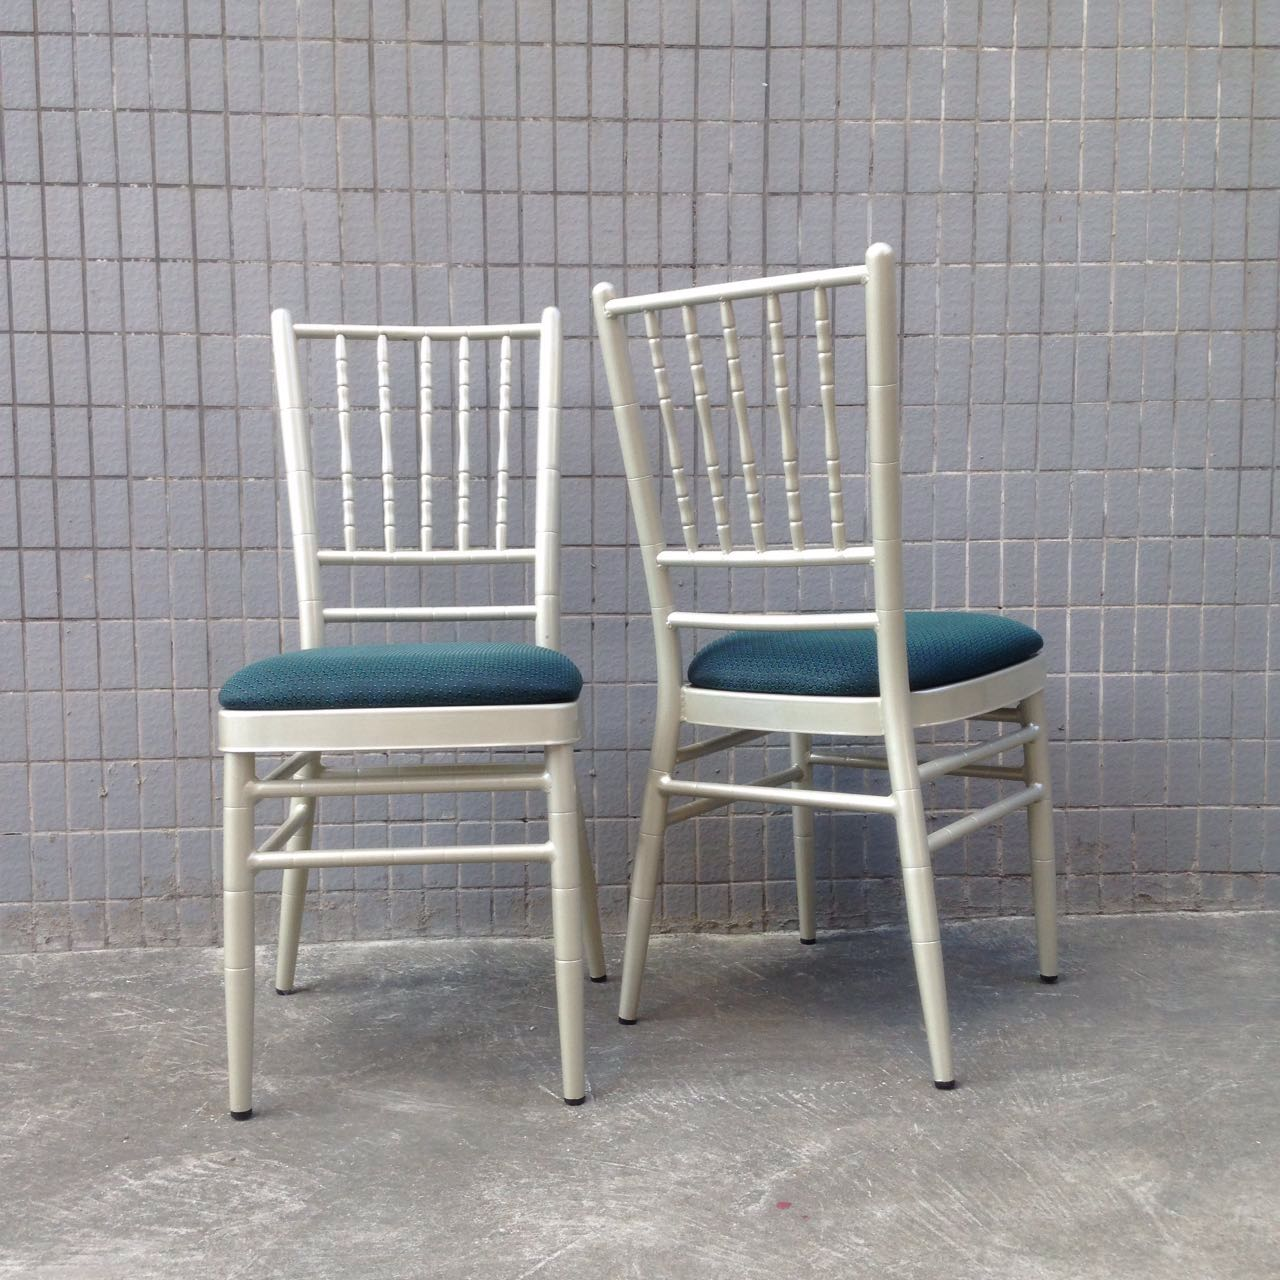 Best Price on Used Church Chairs For Sale -